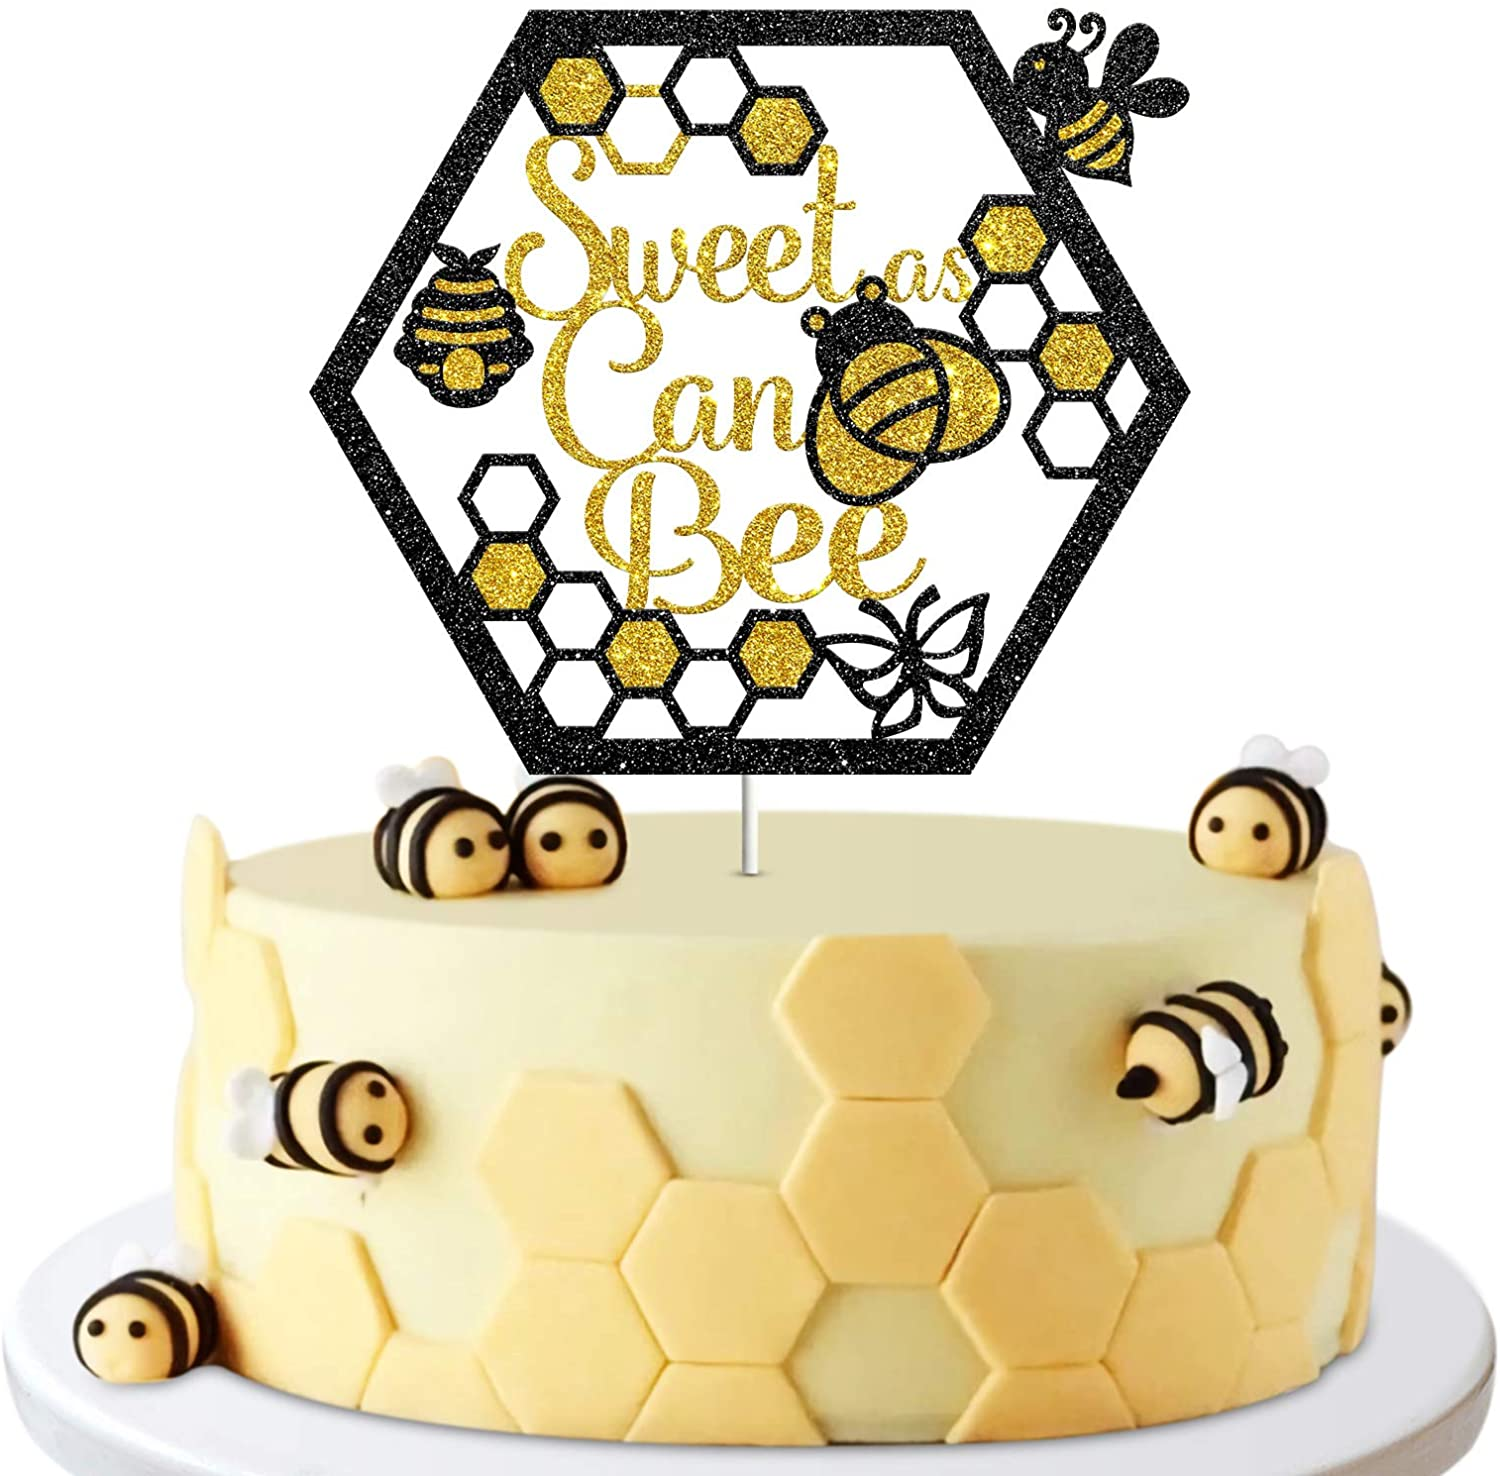 Los Angeles Mall Sweet As Can Bee Sign Cake Decor B Happy Topper Birthday Party Max 65% OFF